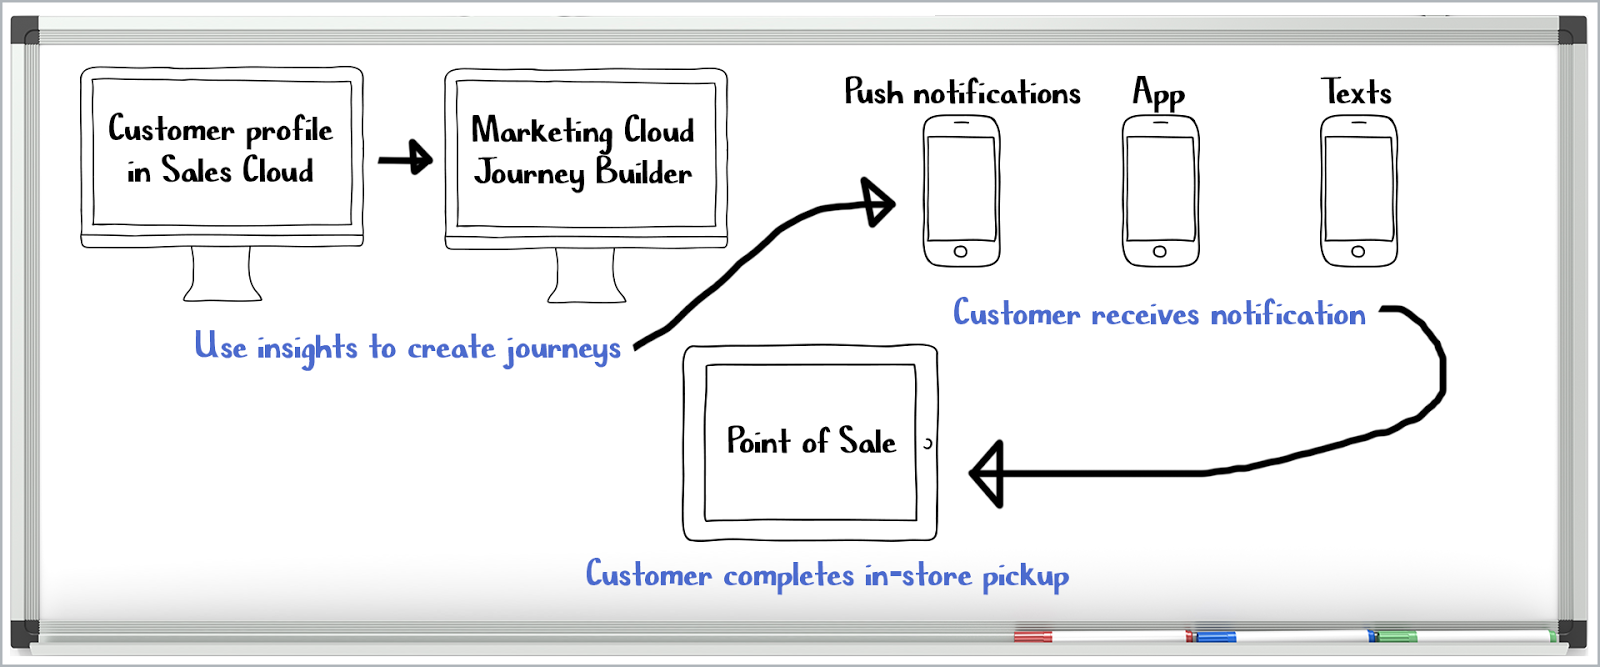 A flow showing how to use insights to create journeys, then a customer receives notification, then the customer completes an in-store pickup, as described in detail in the body copy